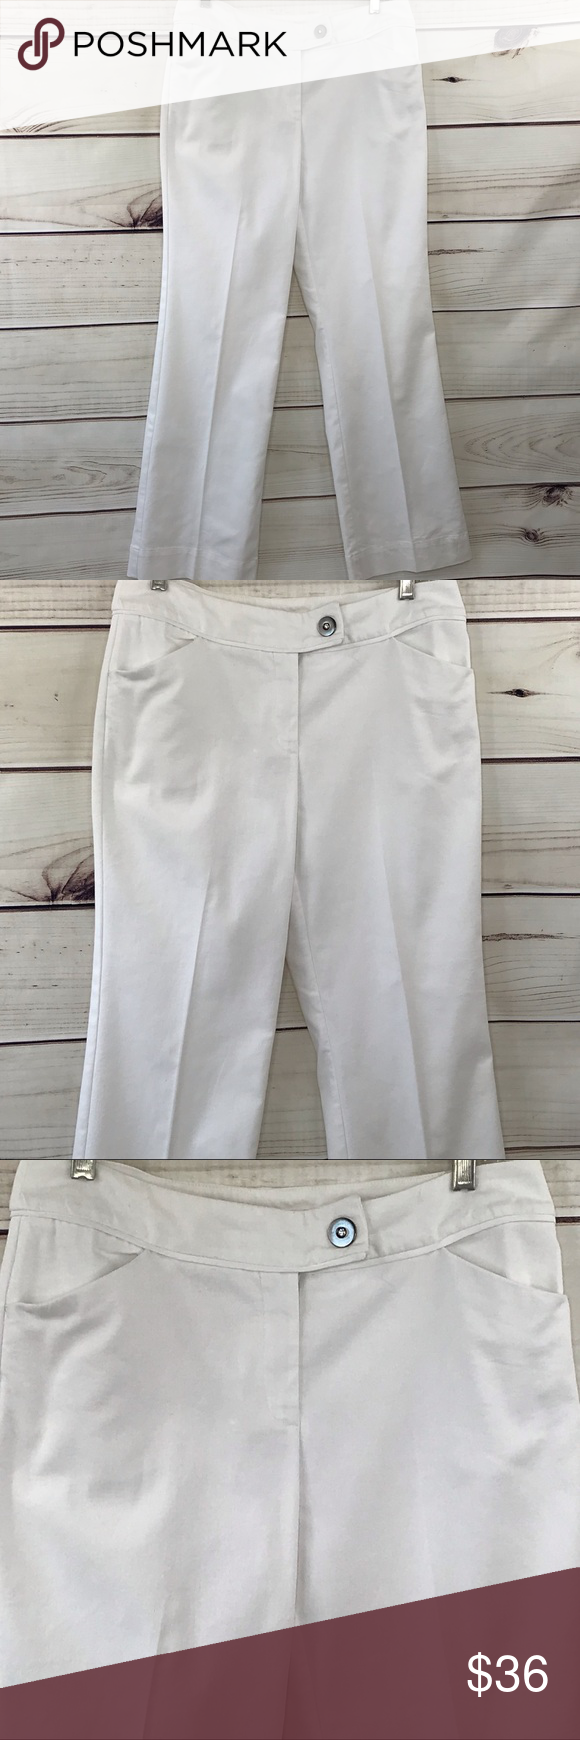 """NINE & CO. Wide Leg White Slacks With Bling Size 8 NINE & CO. Wide Leg White Slacks With Bling Size 8. Flat Front With 2 Pockets. @ Pockets on the Back. 76% Cotton 22% Poly 2% Spandex. Crisp White With the Right Amount of Stretch Make These Slacks Very Comfortable.   Measures Approximately  Waist- 15 1/2"""" Flat Rise- 9 1/2"""" Length- 30 1/2"""" Hem Width- 9""""  BM011 Nine & Co. Pants Wide Leg #whiteslacks NINE & CO. Wide Leg White Slacks With Bling Size 8 NINE & CO. Wide Leg White Slacks With Bl #whiteslacks"""